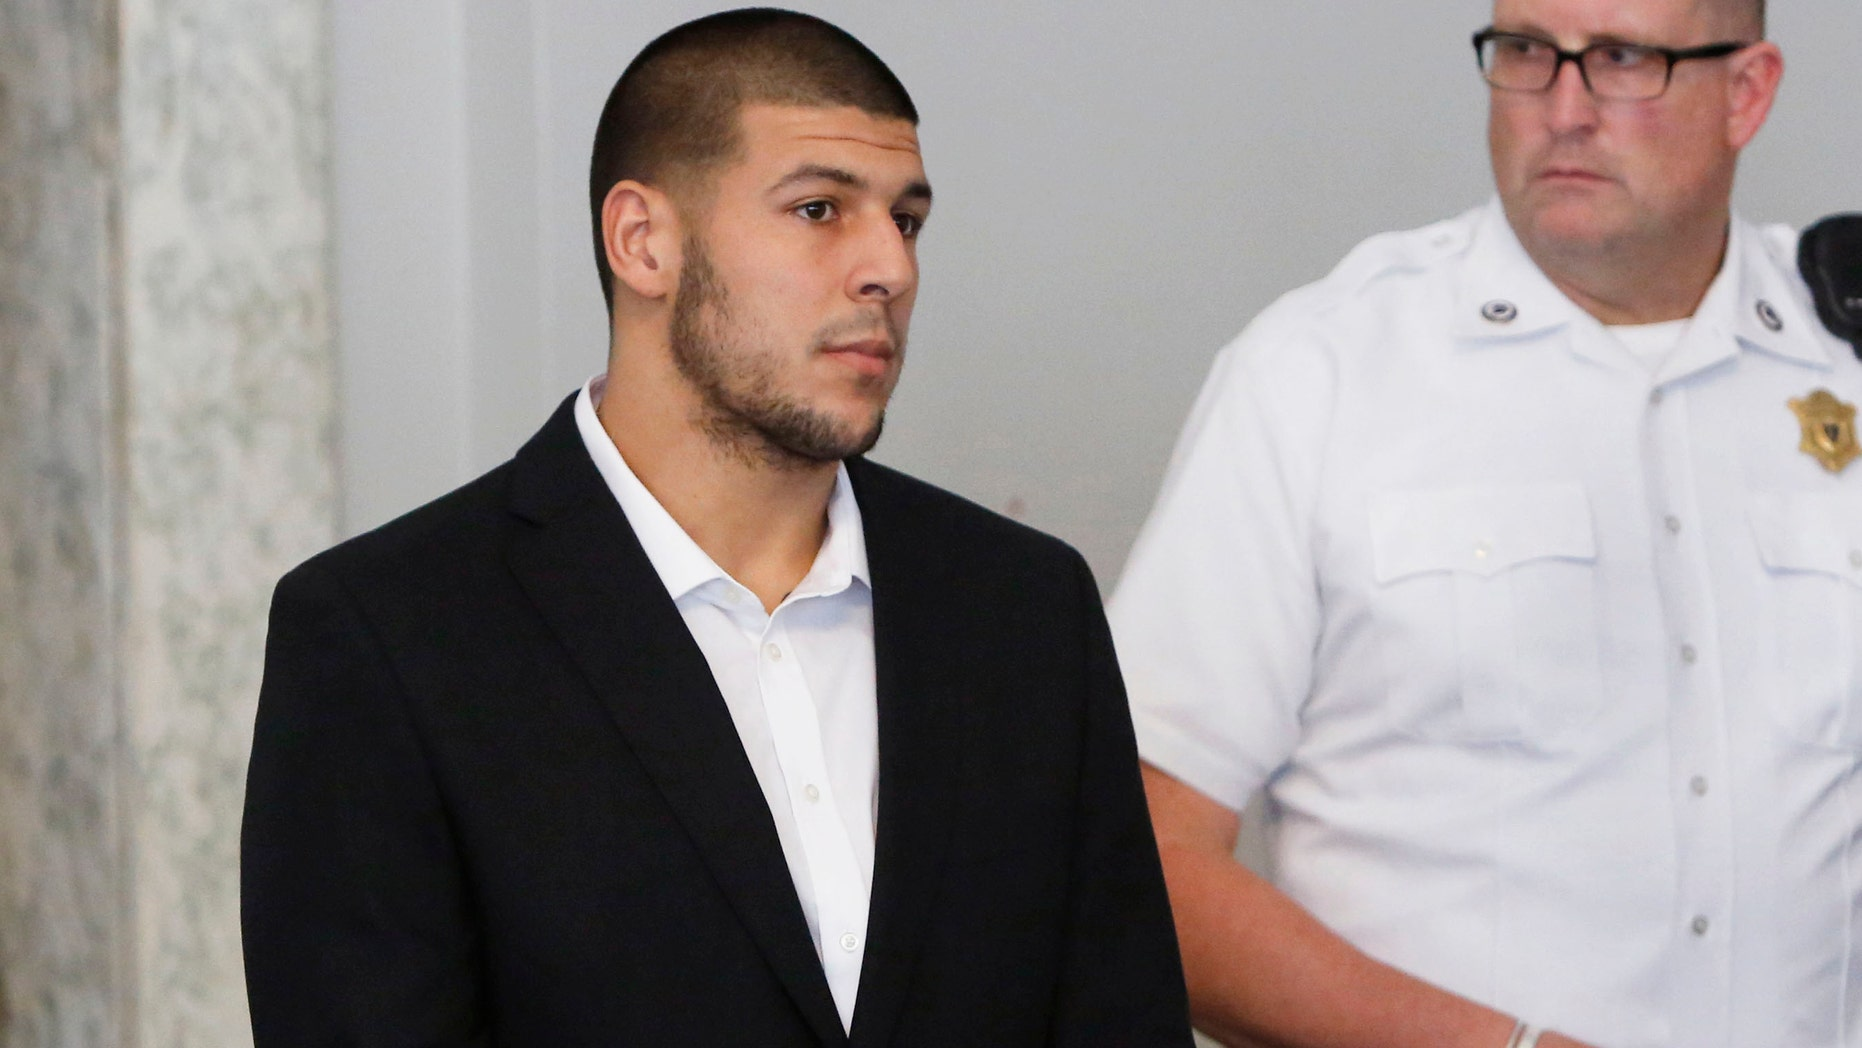 Former New England Patriots NFL football tight end Aaron Hernandez, left, appears at Attleboro District Court on Wednesday, July 24, 2013, in Attleboro, Mass.